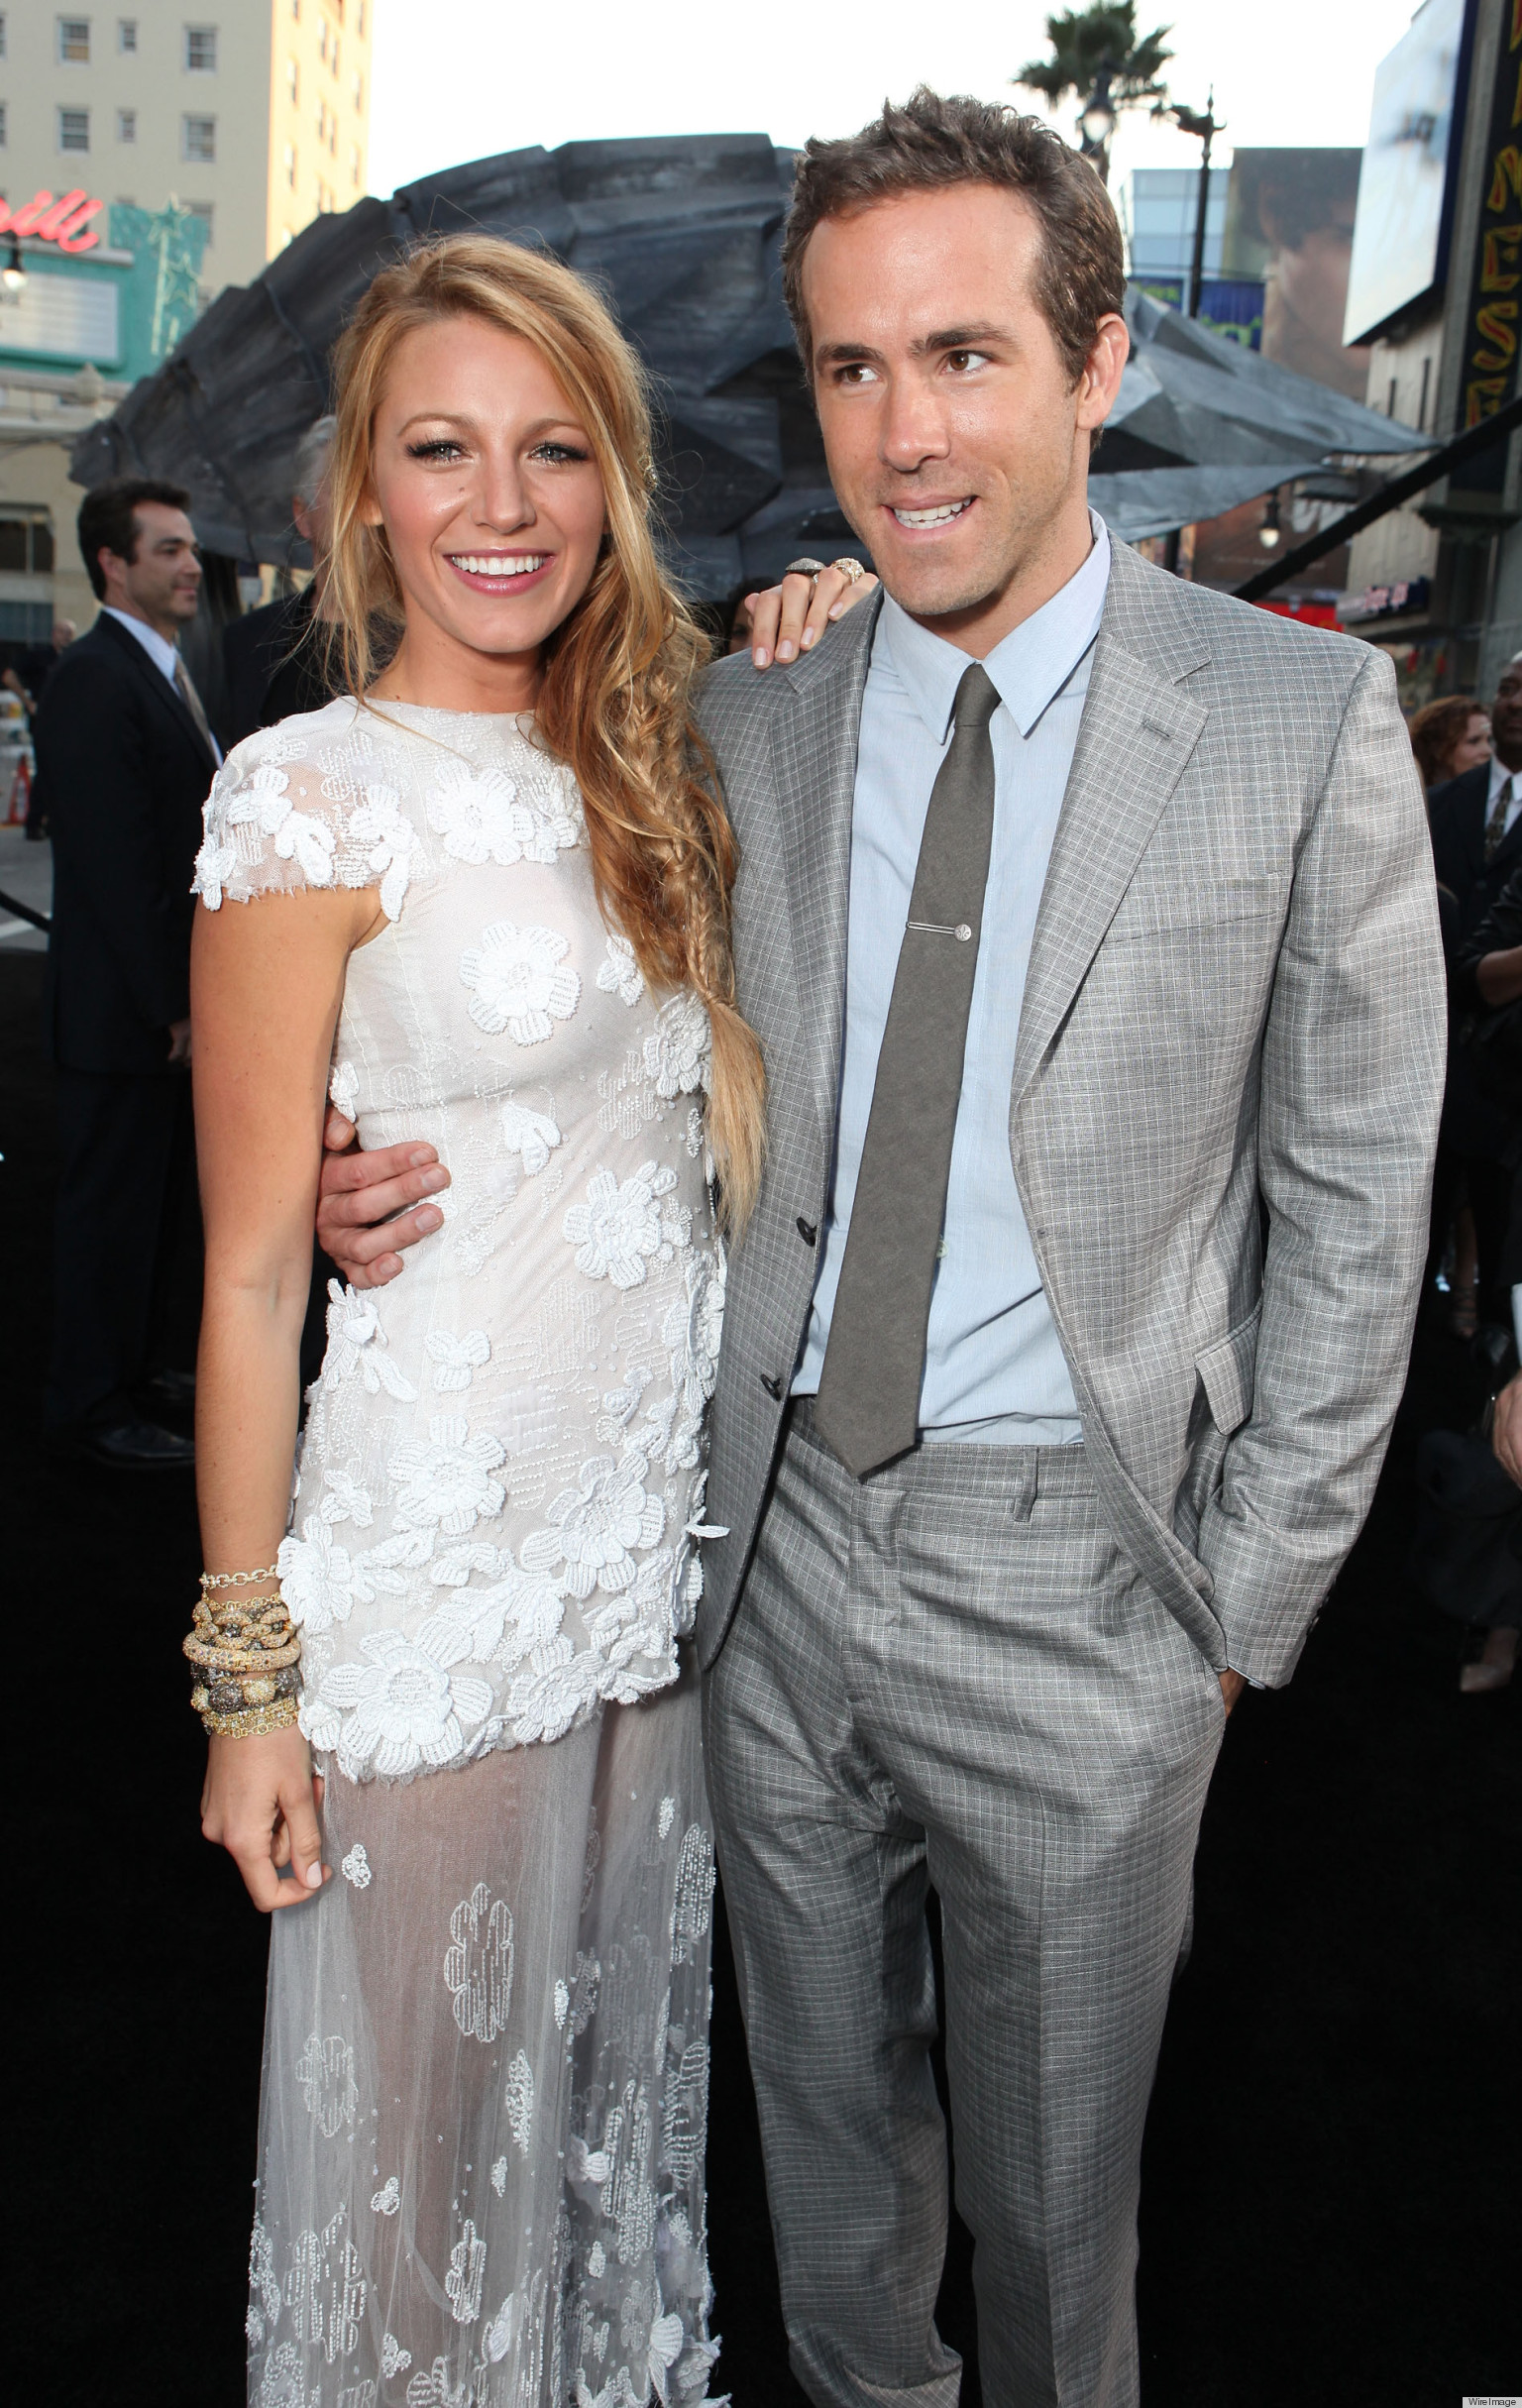 Blake Lively S Wedding Dress Was Marchesa Not Chanel